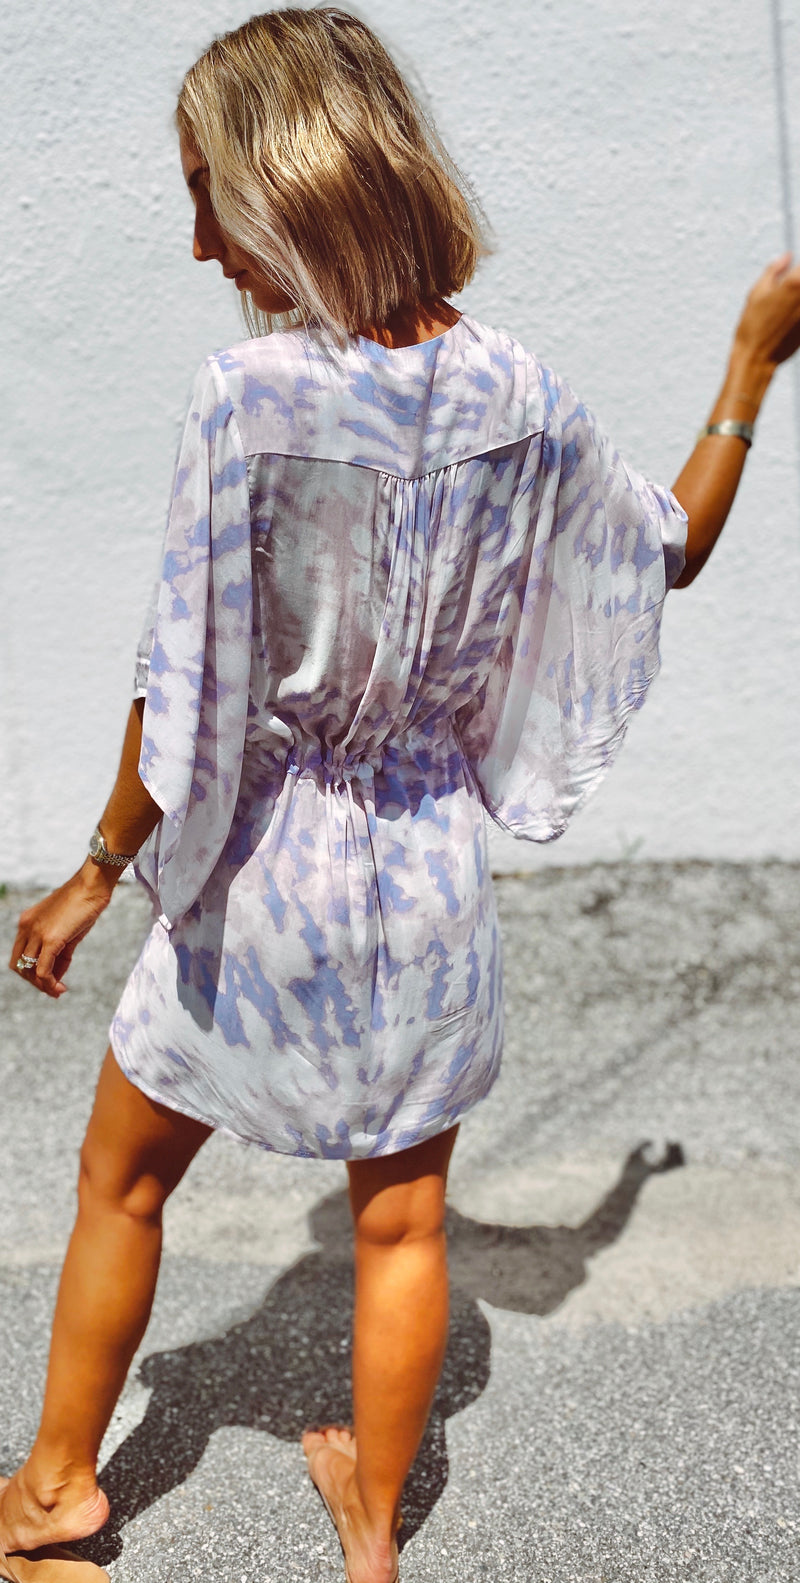 The Tie Dye Butterfly Dress